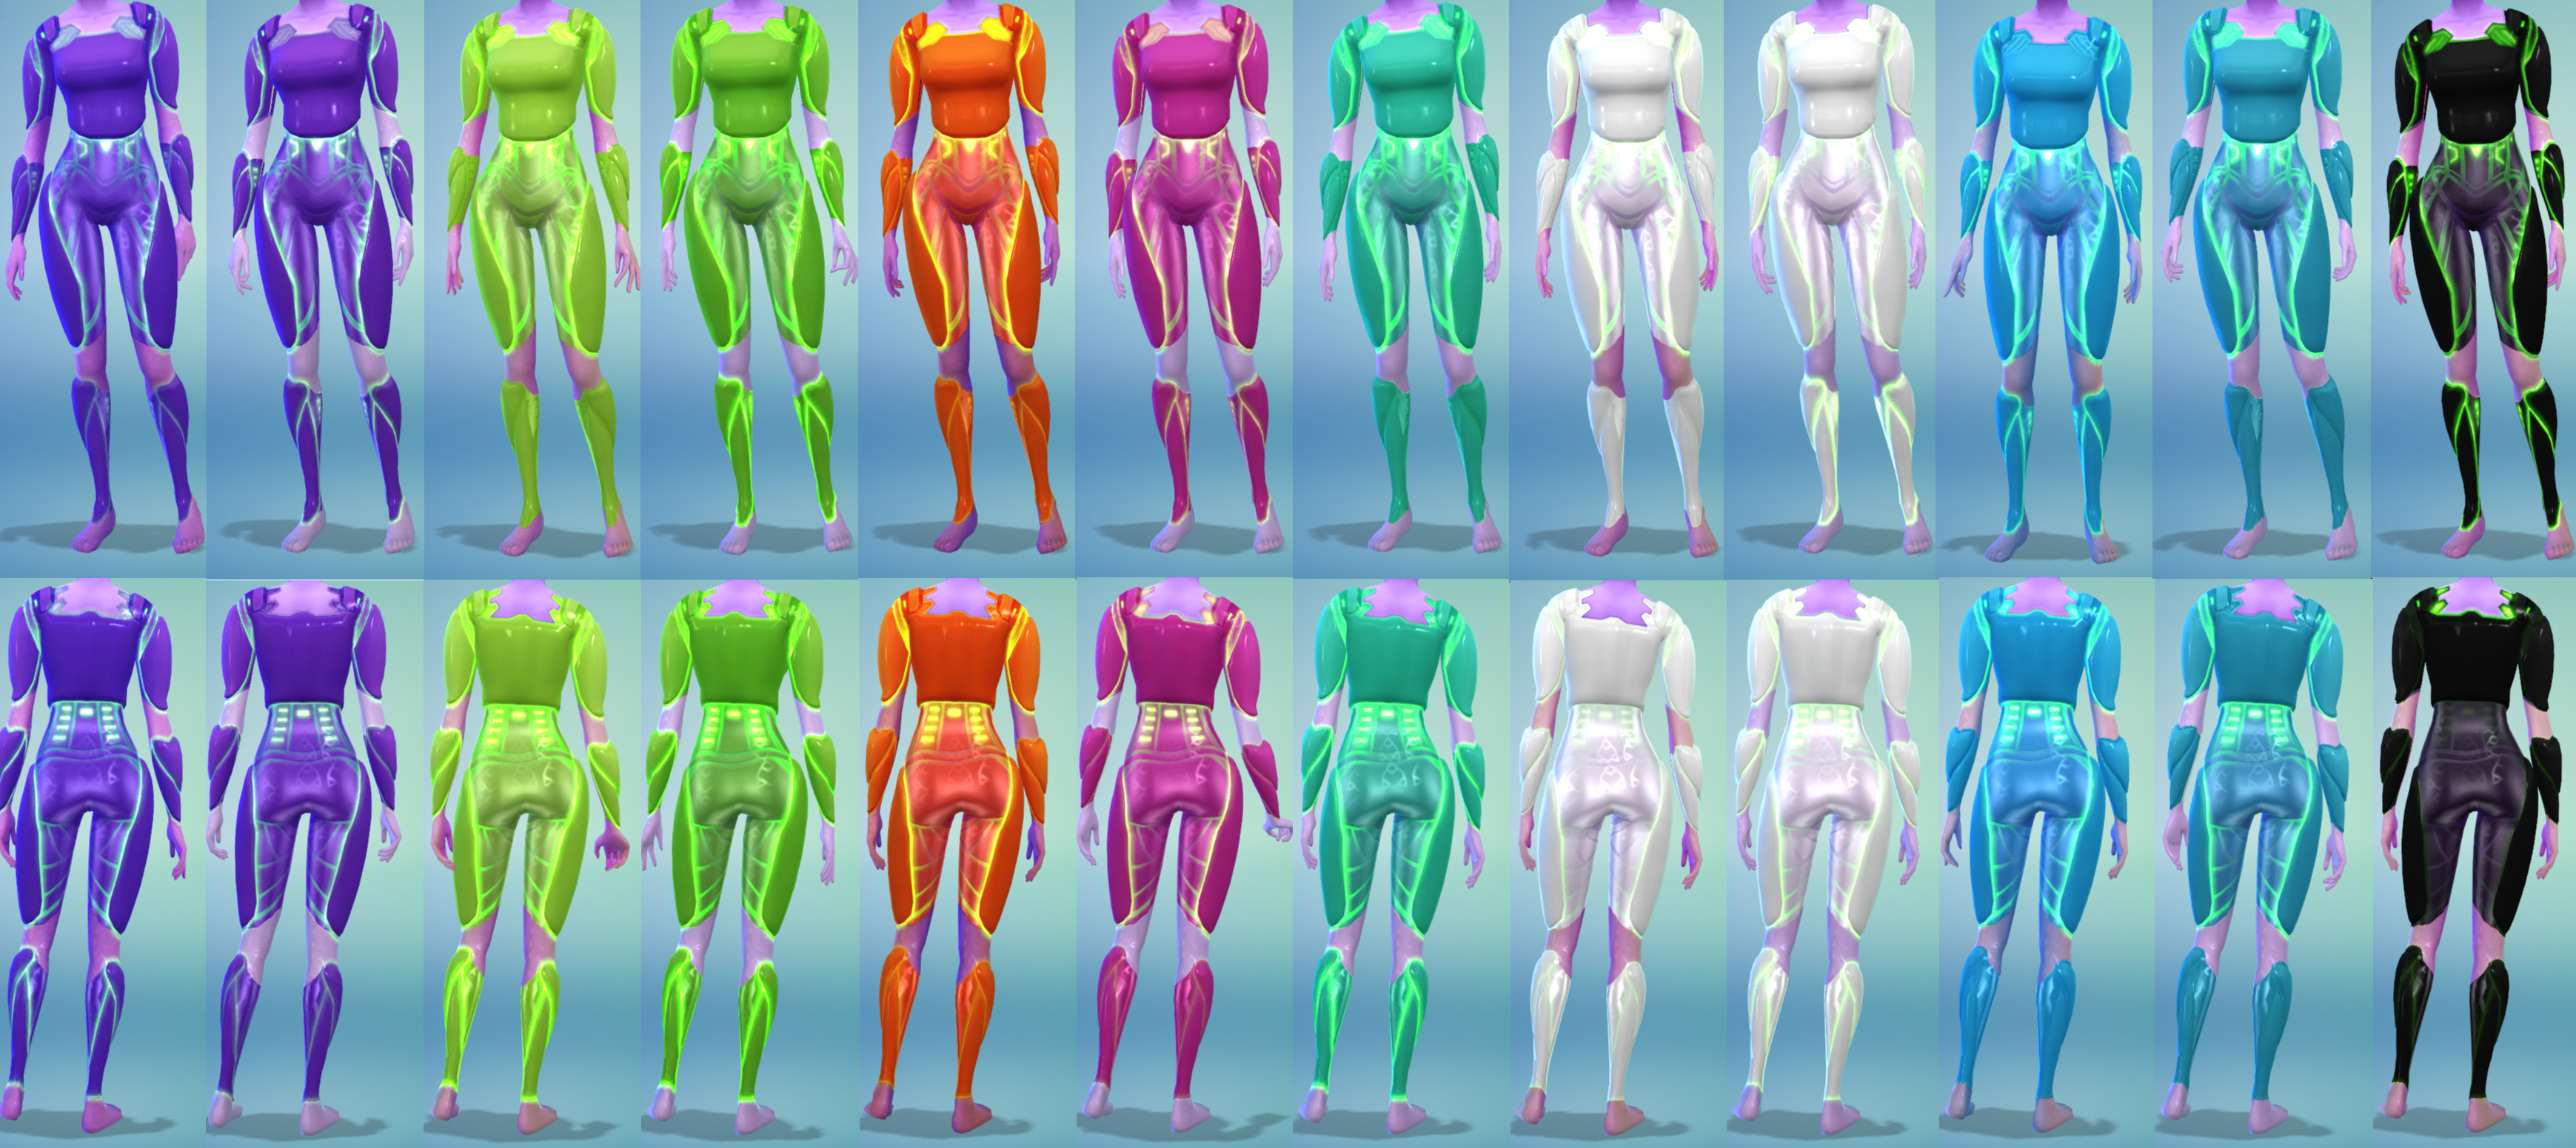 12 Female Alien Armor Recolors by The Simsperience